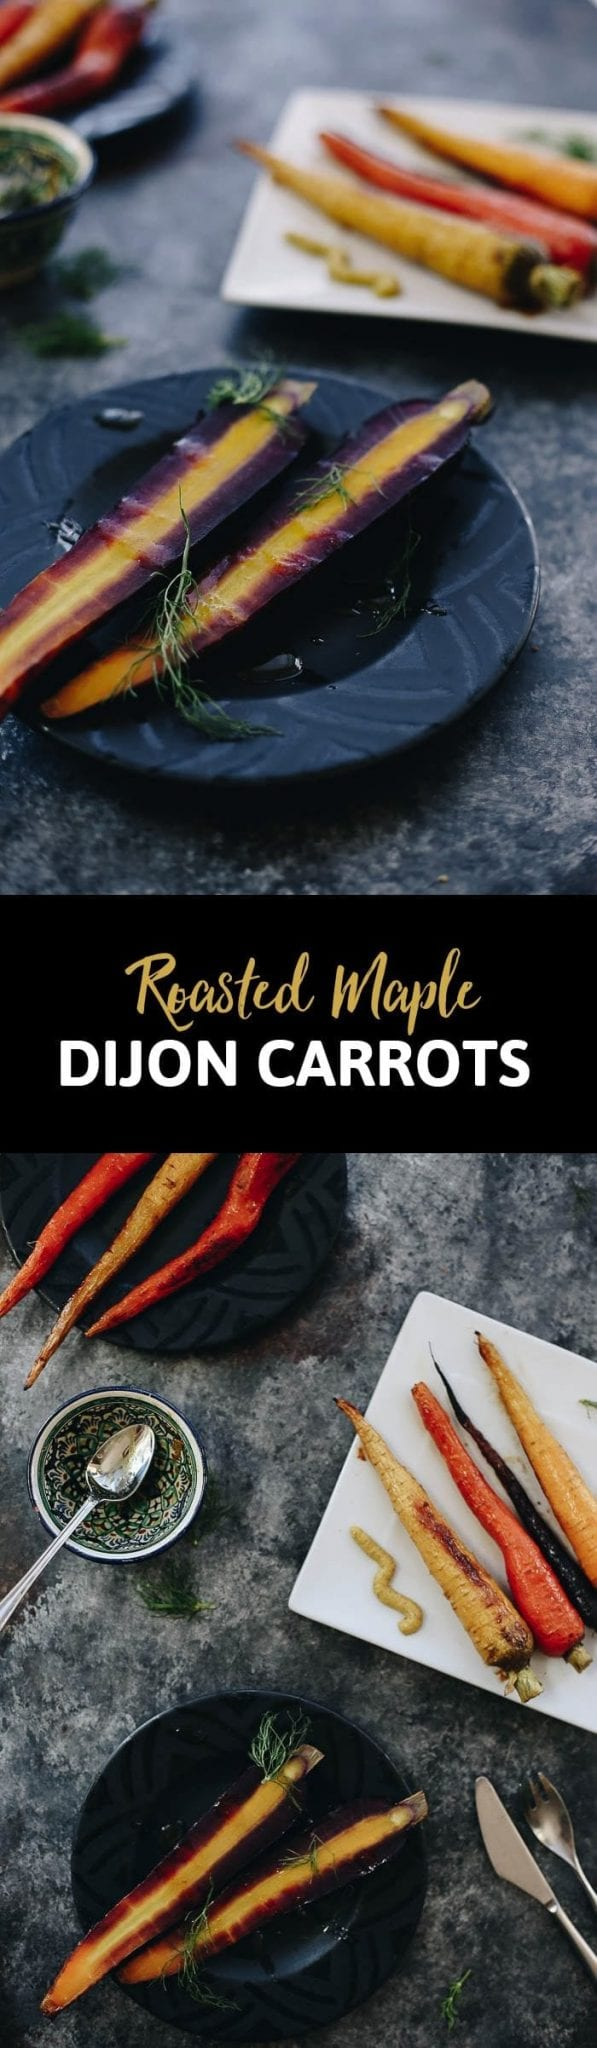 You'll find the perfect side dish recipe in these Roasted Maple Dijon Carrots. Marinate and roast to perfection to make dinner easier and healthier every night of the week.